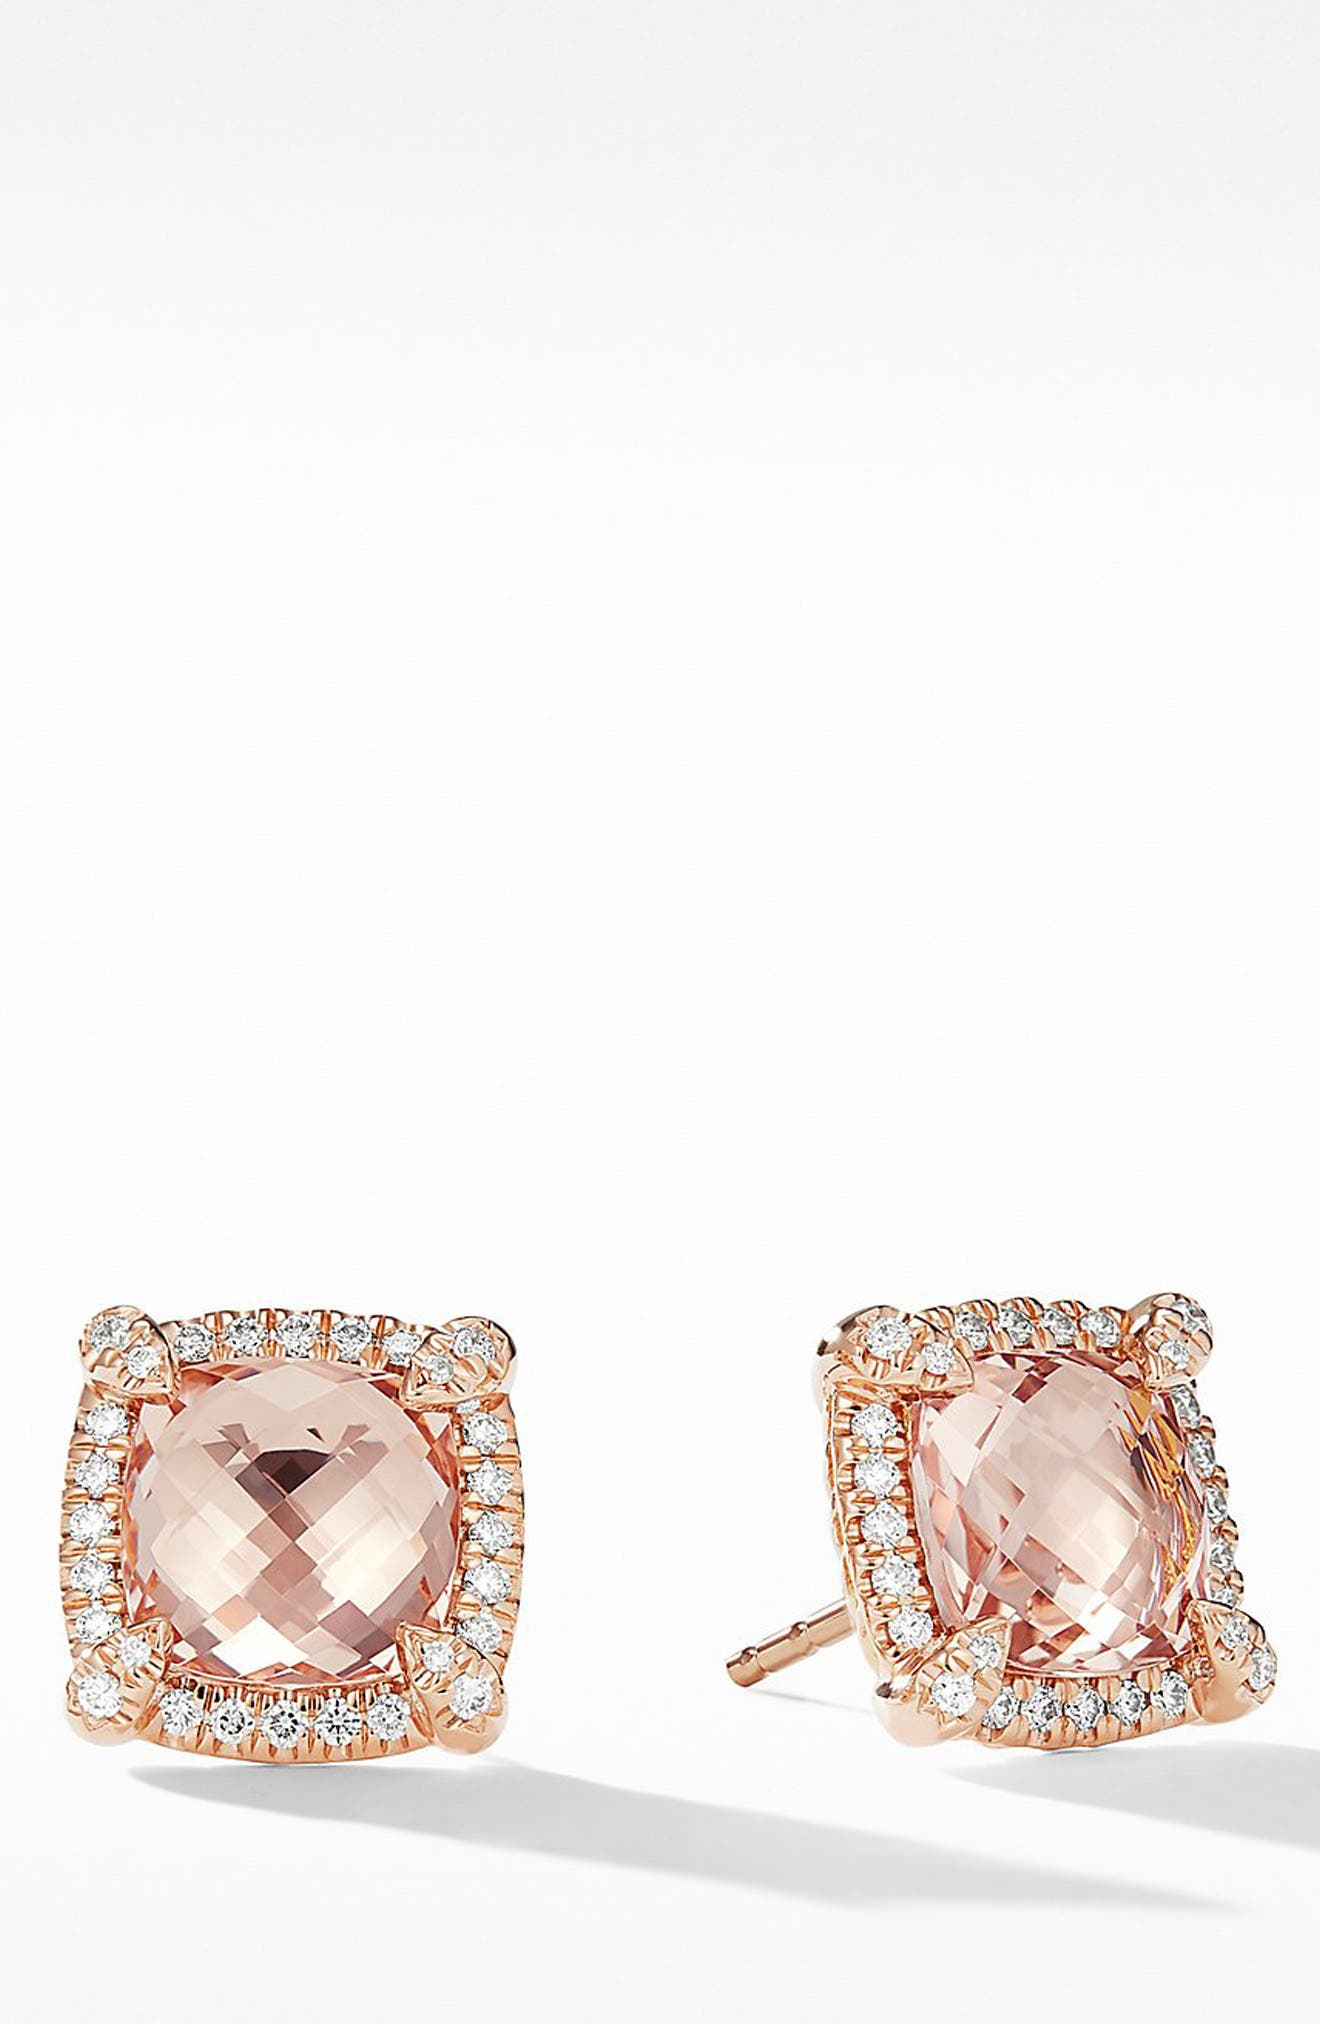 Châtelaine Pavé Bezel Stud Earrings with Morganite and Diamonds in 18K Rose Gold,                             Main thumbnail 1, color,                             ROSE GOLD/ DIAMOND/ MORGANITE